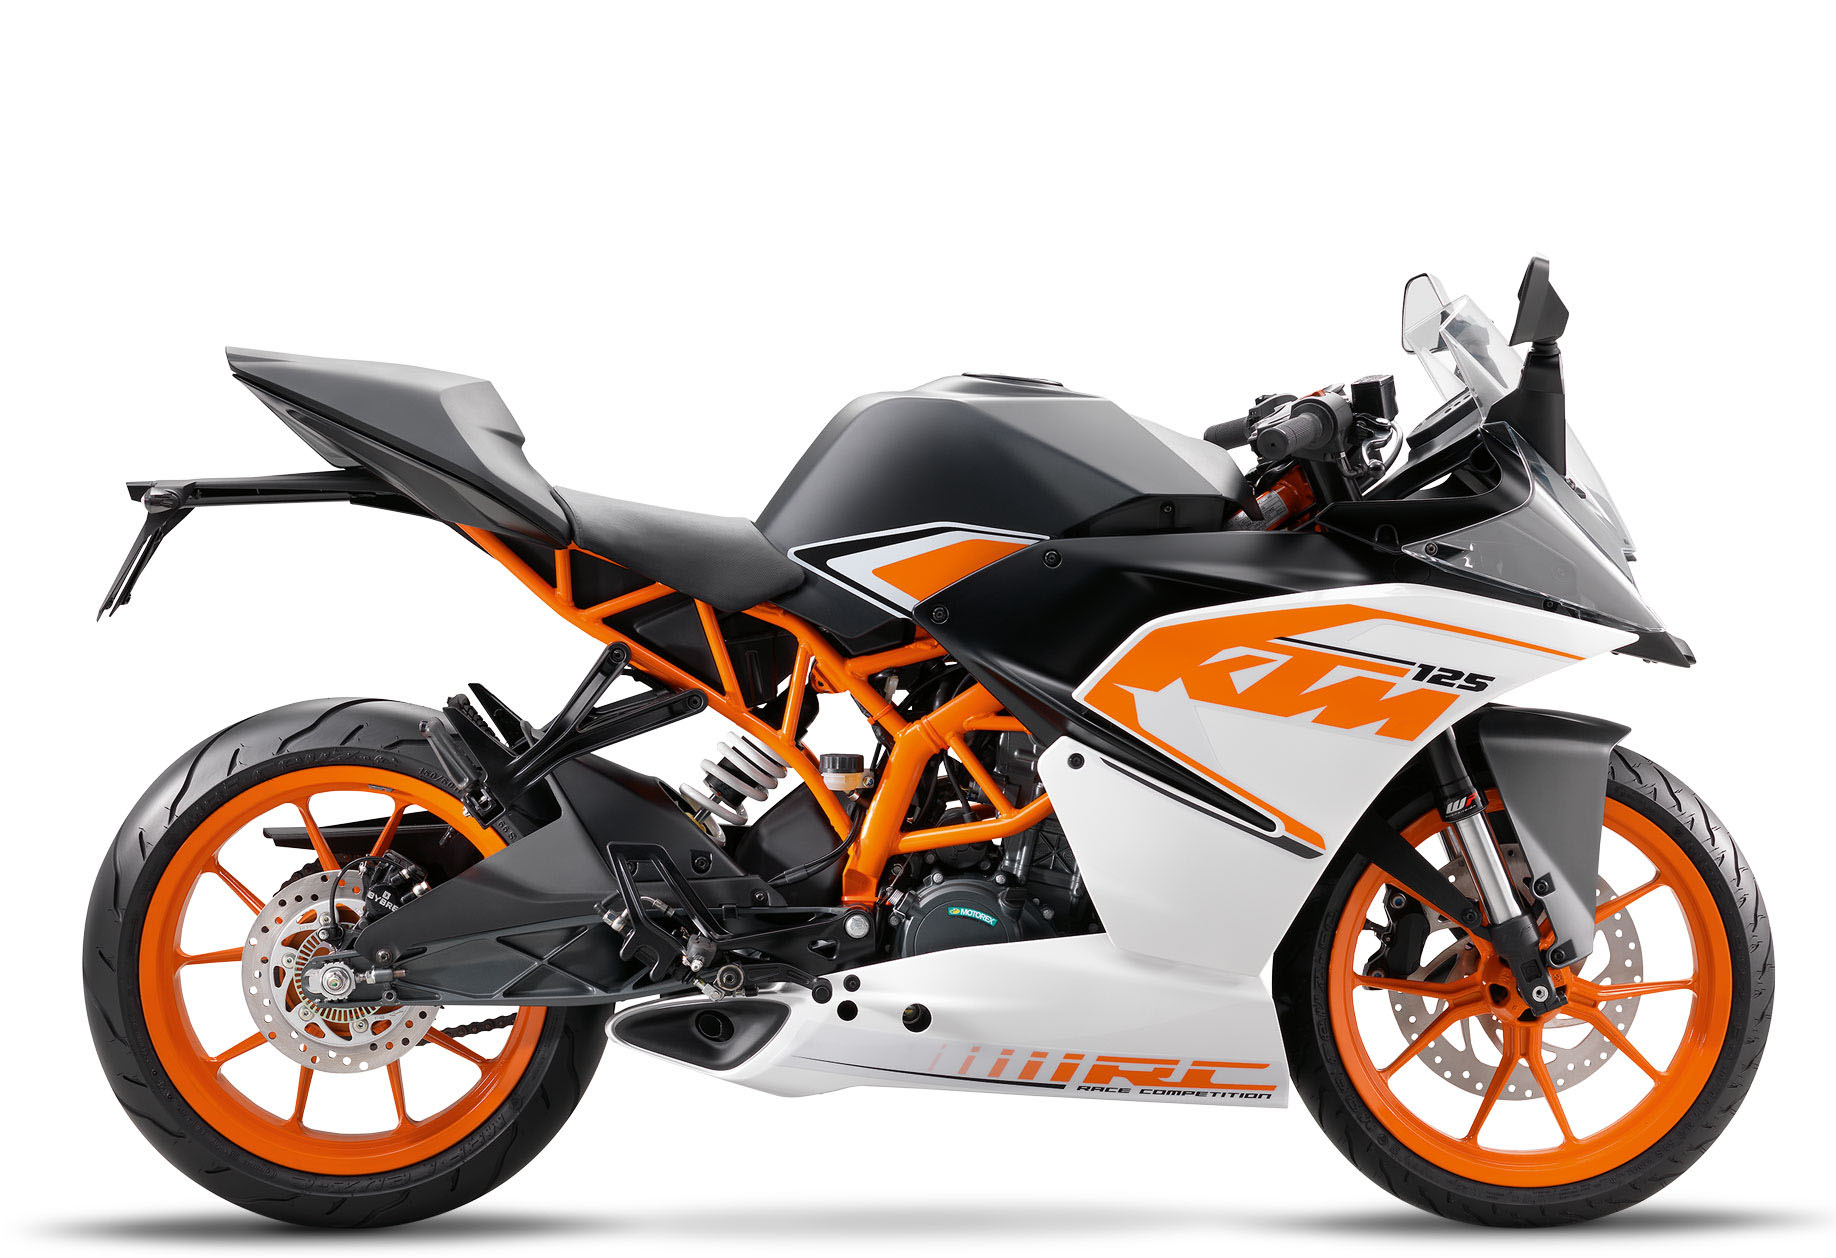 ktm rc 125 2016 trevor pope motorcycles parts spares accessories and more. Black Bedroom Furniture Sets. Home Design Ideas